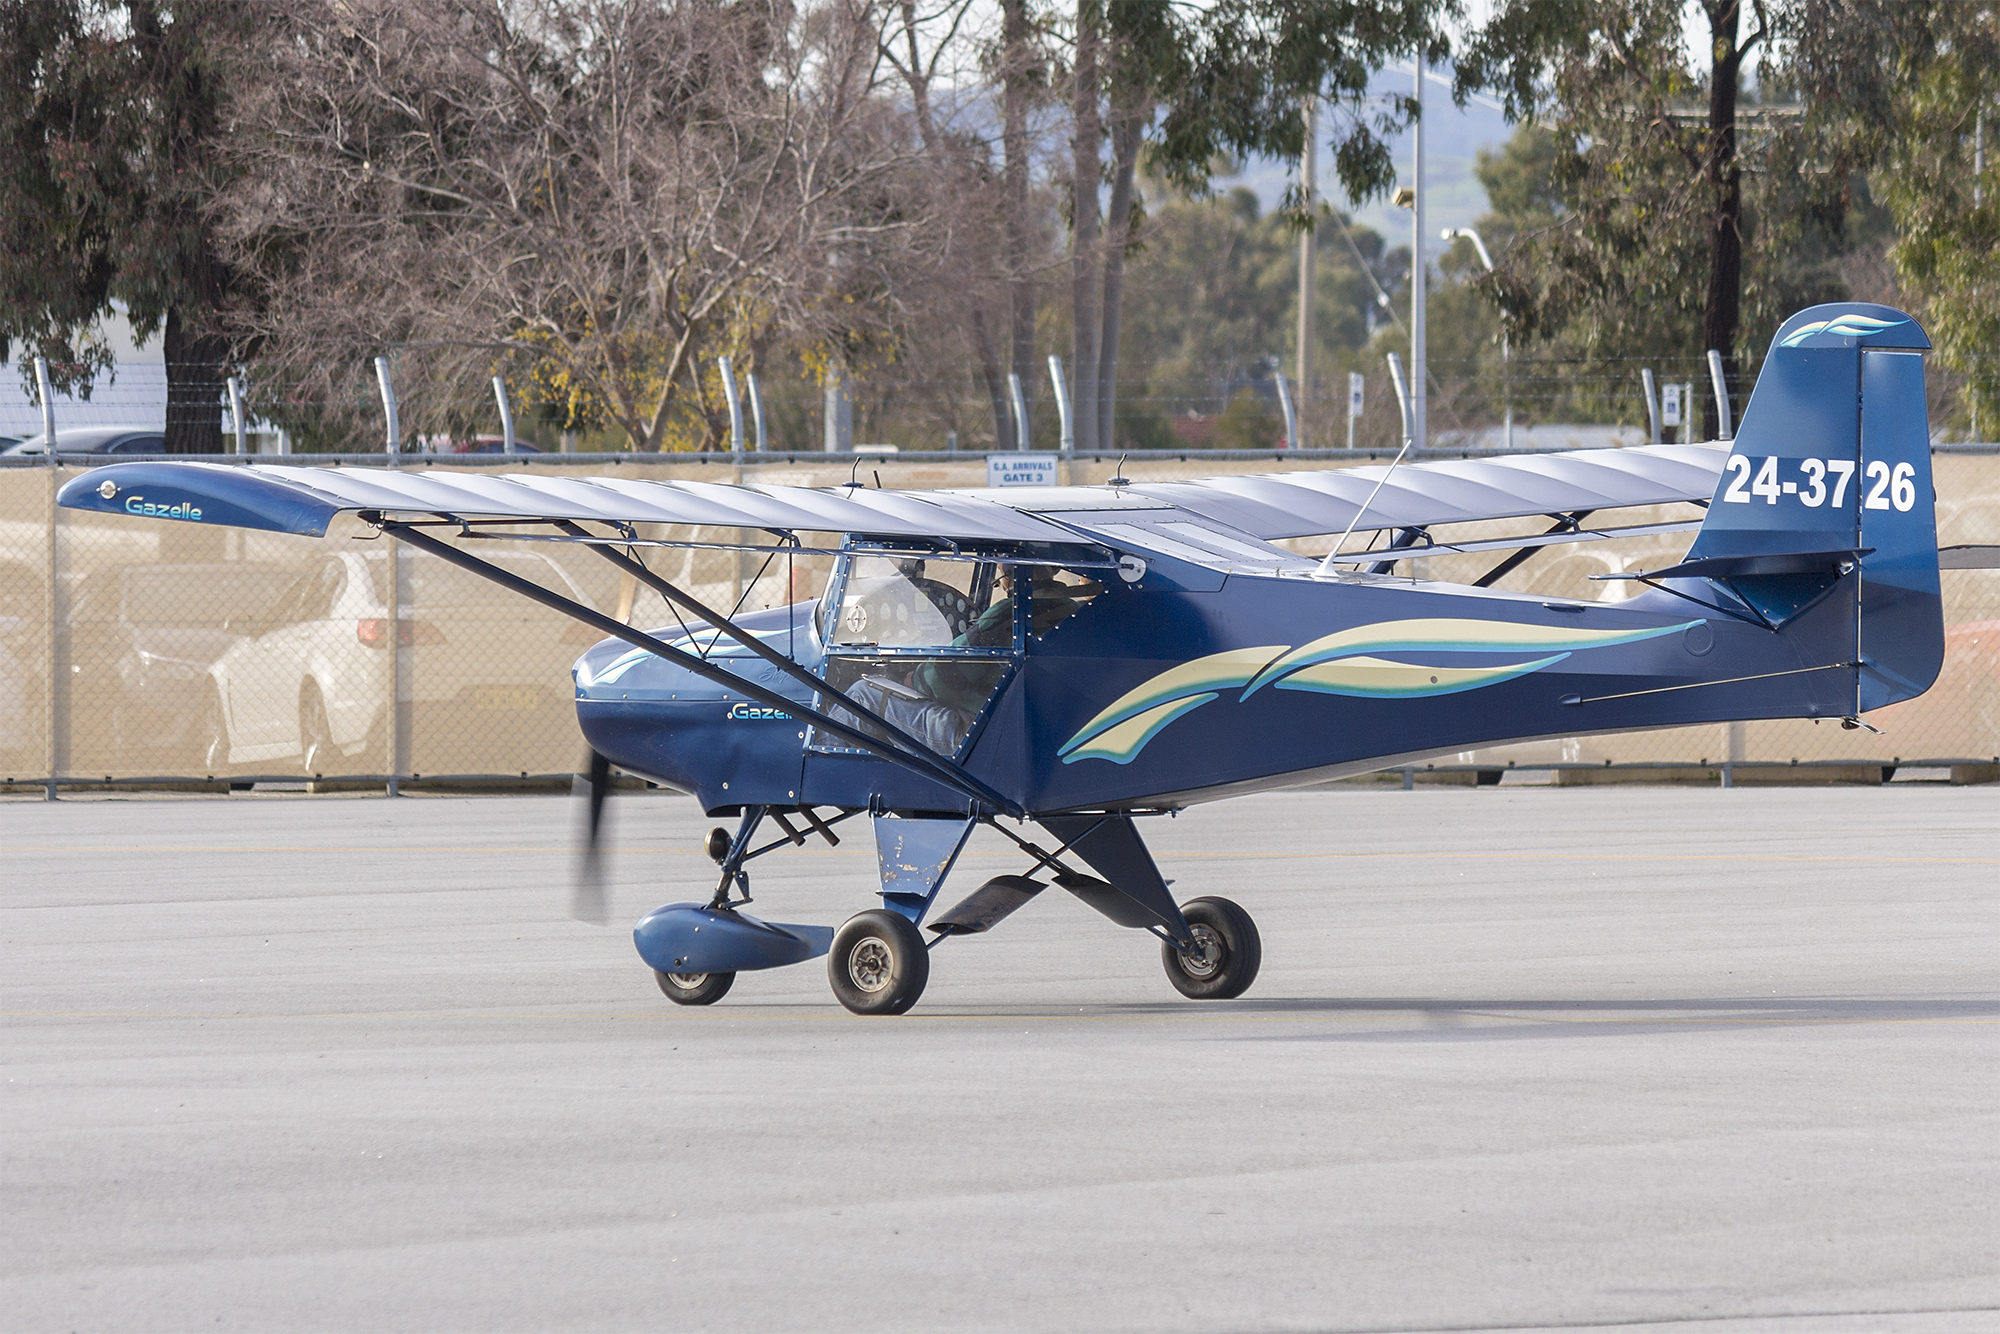 finest selection united states wholesale dealer File:Skyfox CA25N Gazelle (24-3726) taxiing at Wagga Wagga ...